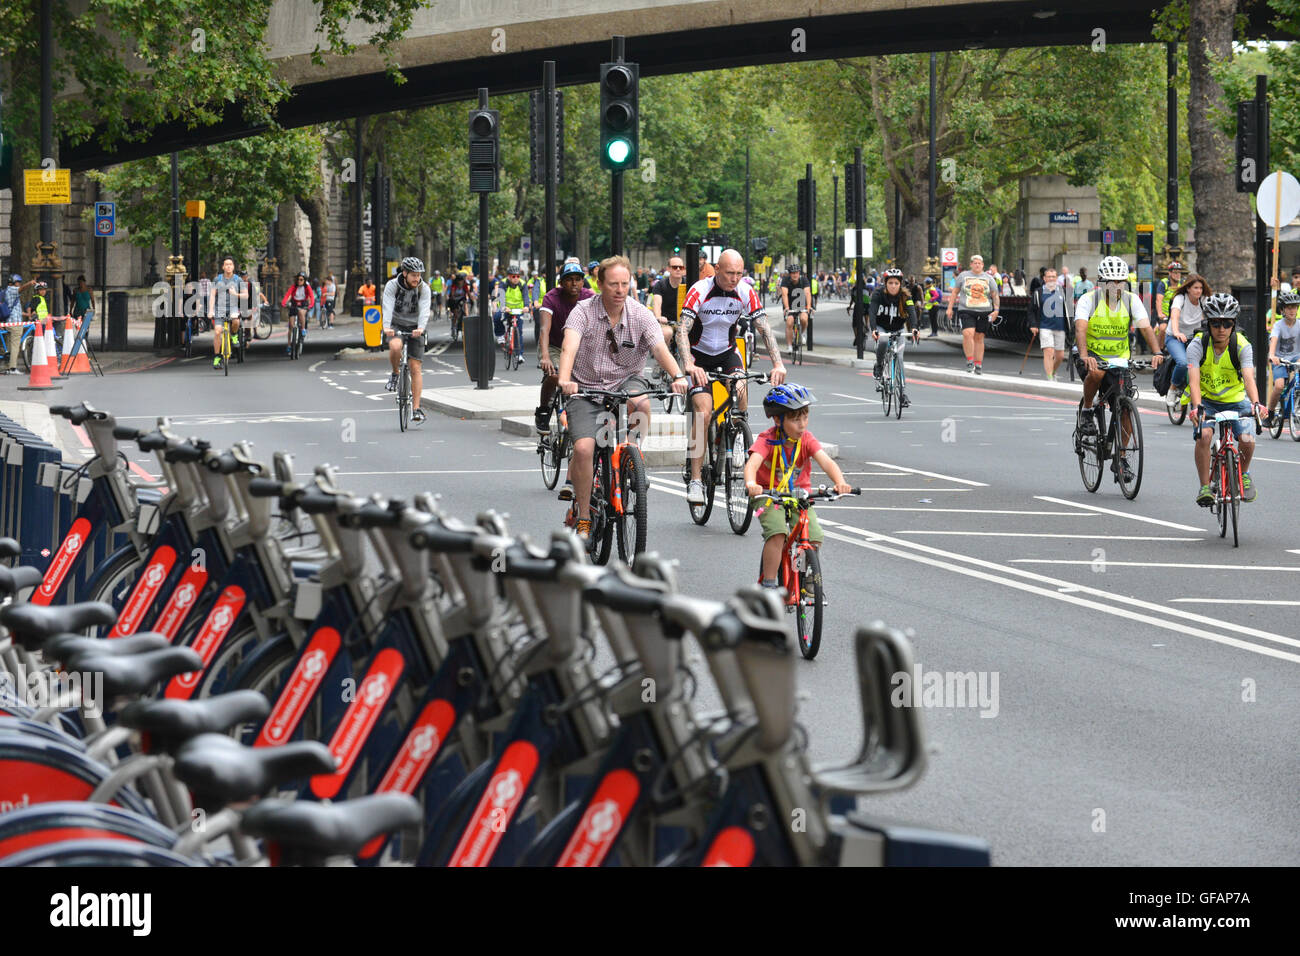 London, UK. 30th July, 2016. Freecycle day, Ride London 2016. Cyclists of all ages riding around central London. Stock Photo